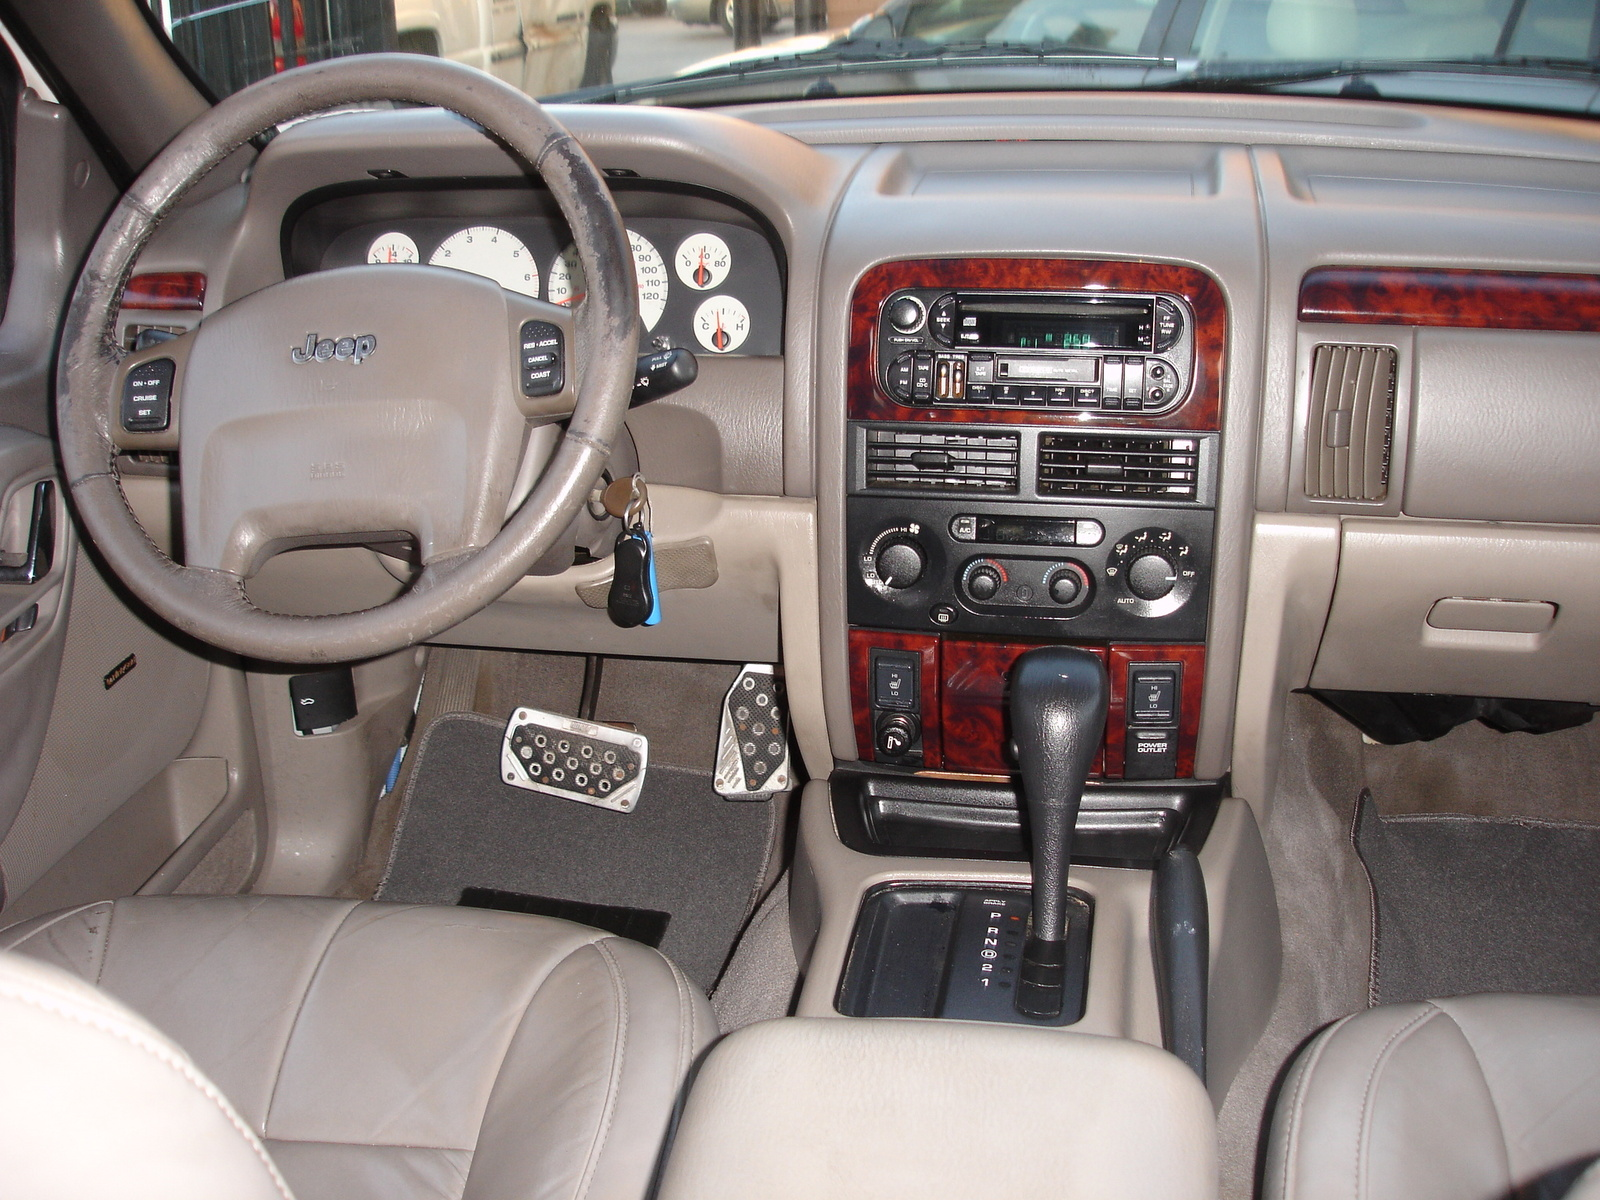 2001 Jeep Grand Cherokee - Interior Pictures - CarGurus